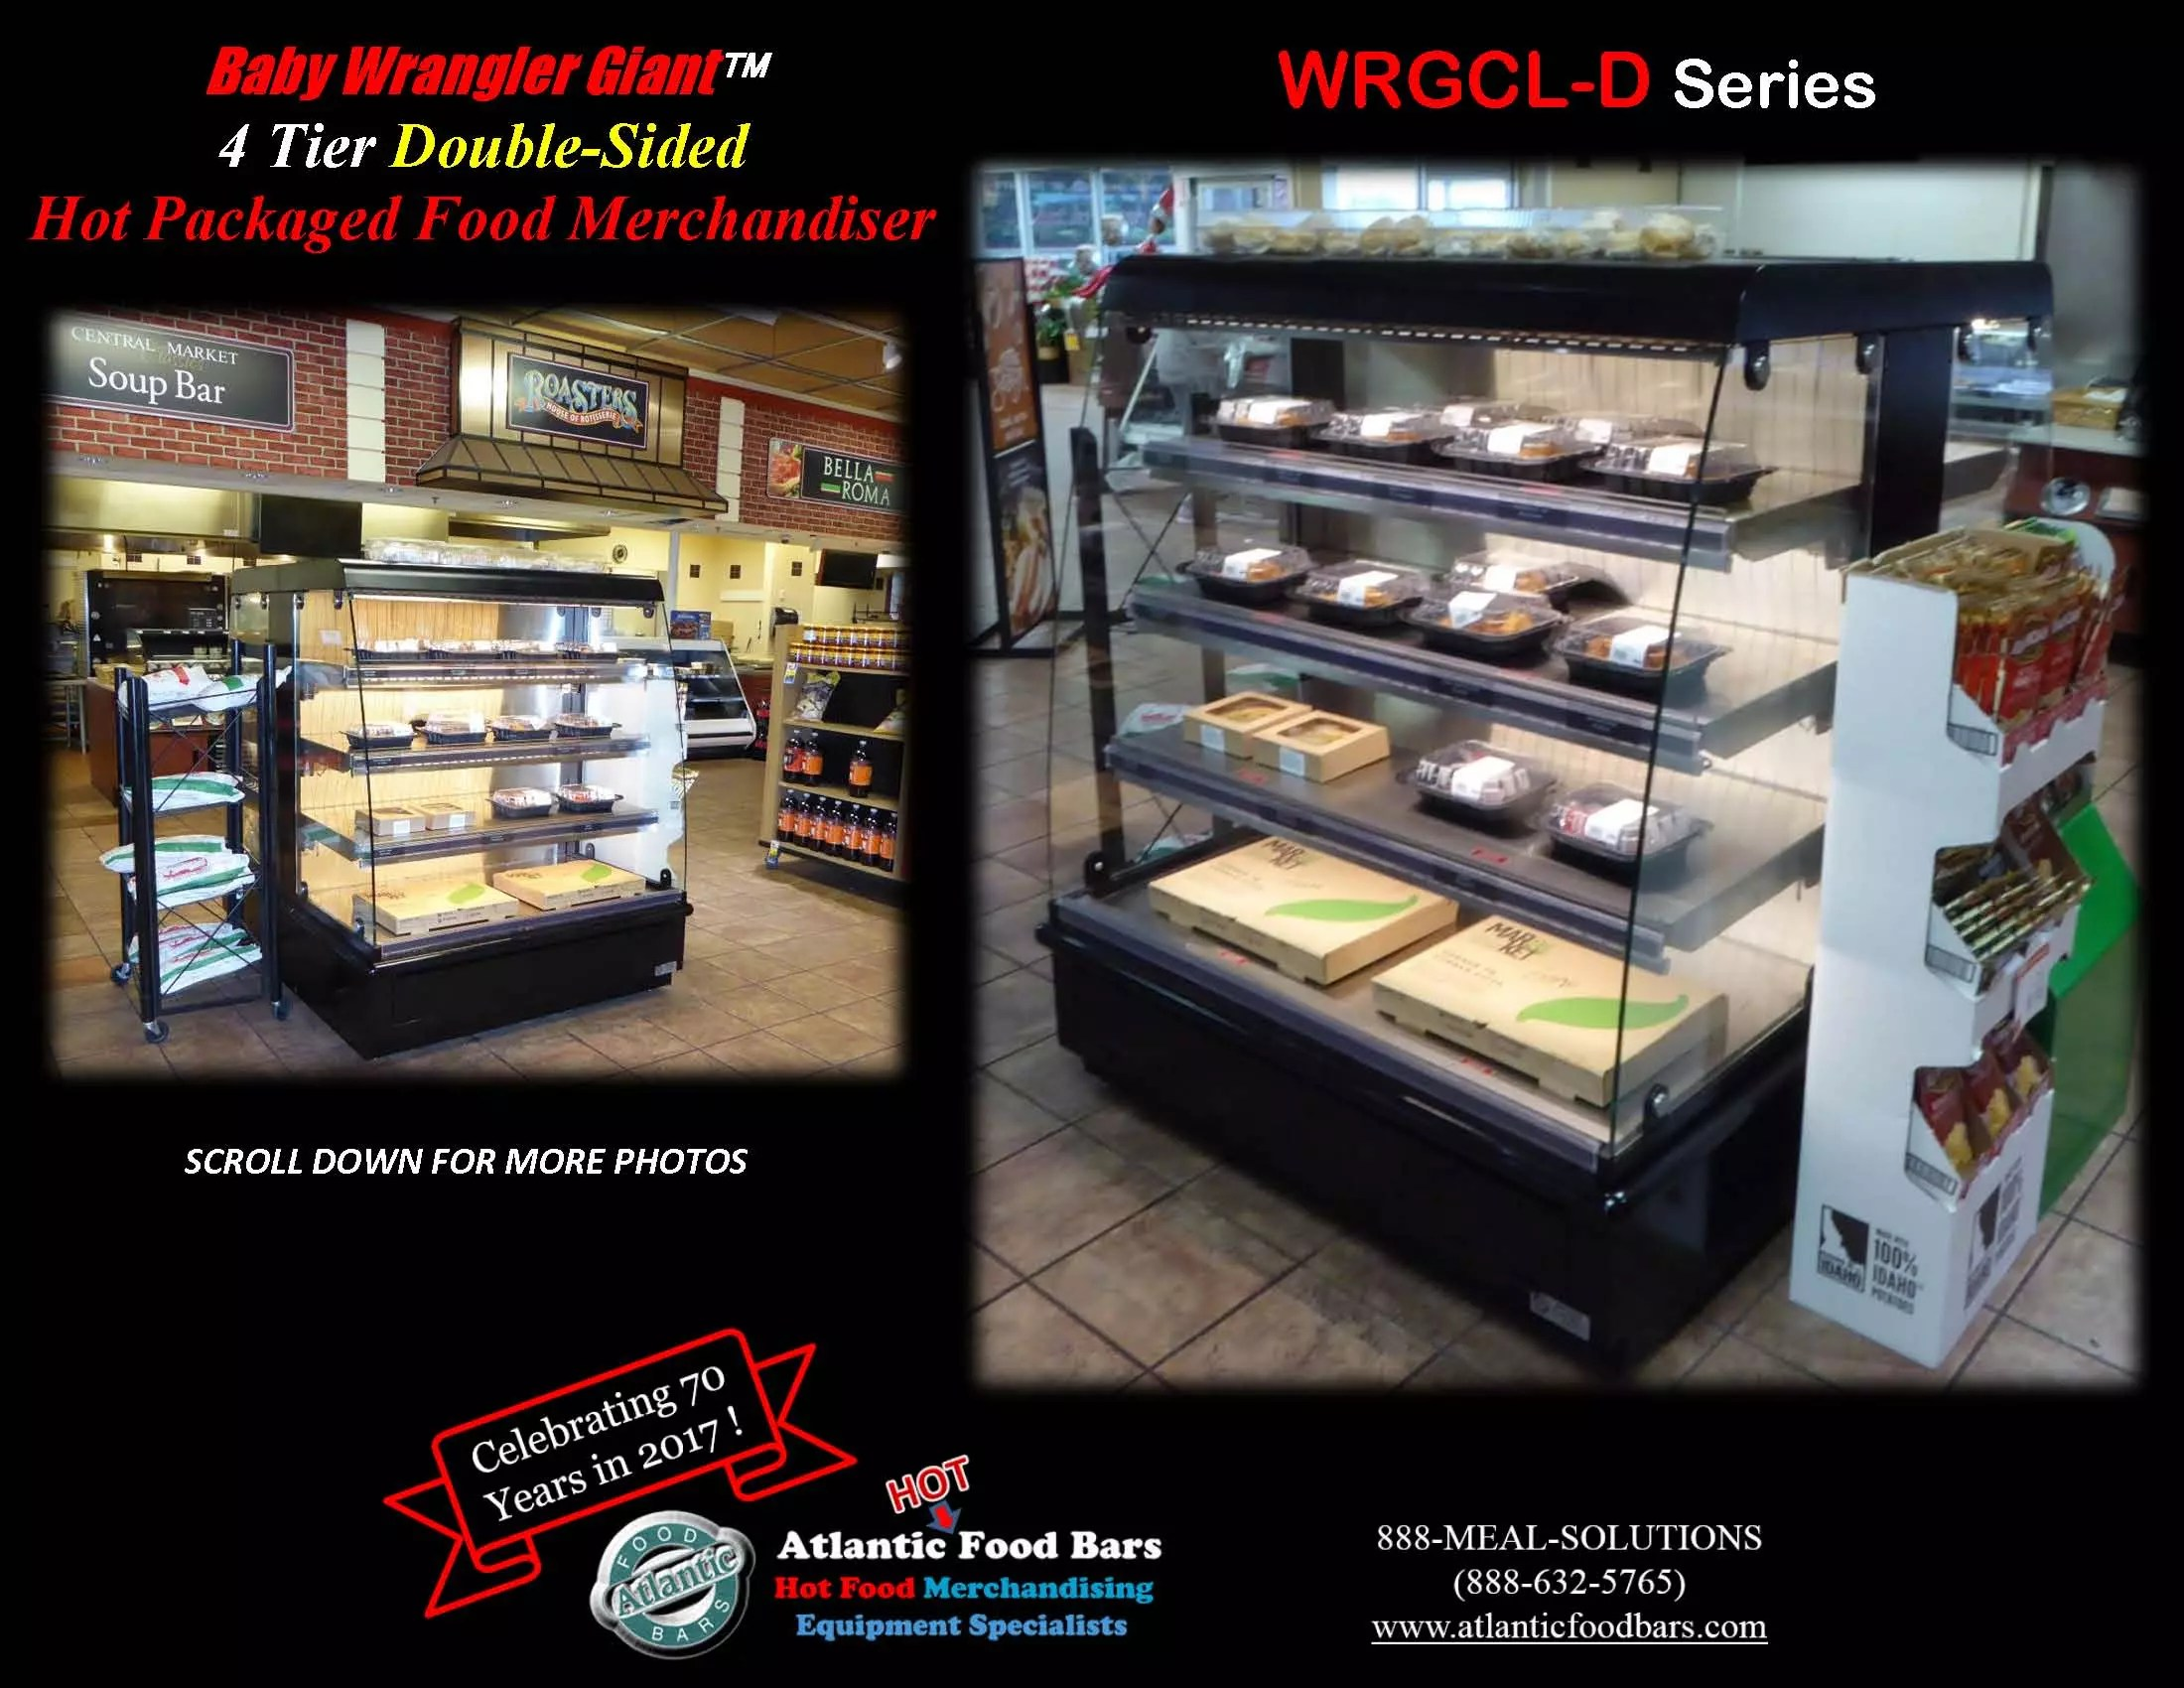 Atlantic Food Bars - Double Sided Baby Wrangler Giant - Four Level Low Profile Hot Packaged Food Merchandiser - WRGCL5060D-ASDS-CE-PCB_Page_1